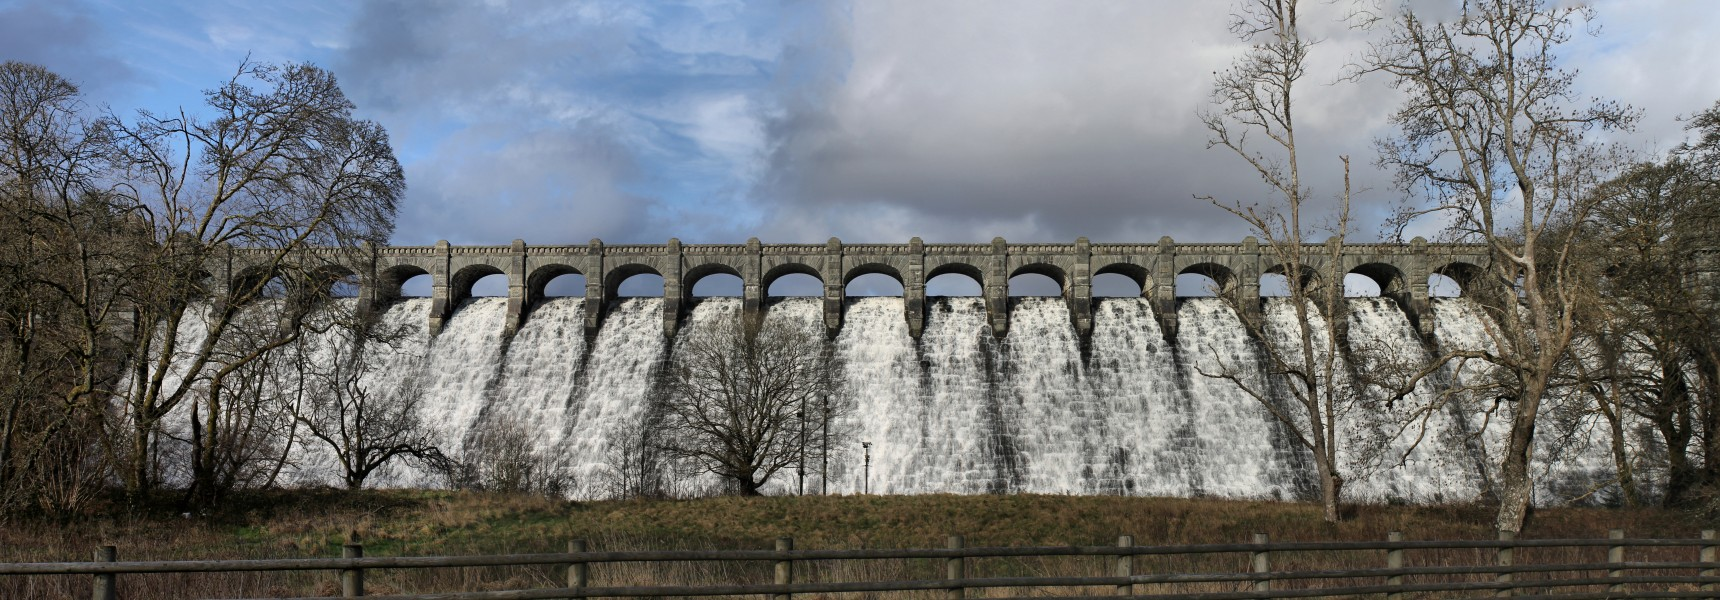 Llyn Llanwddyn - Vyrnwy Dam, Powys, Wales built over a village to supply water to Liverpool 45